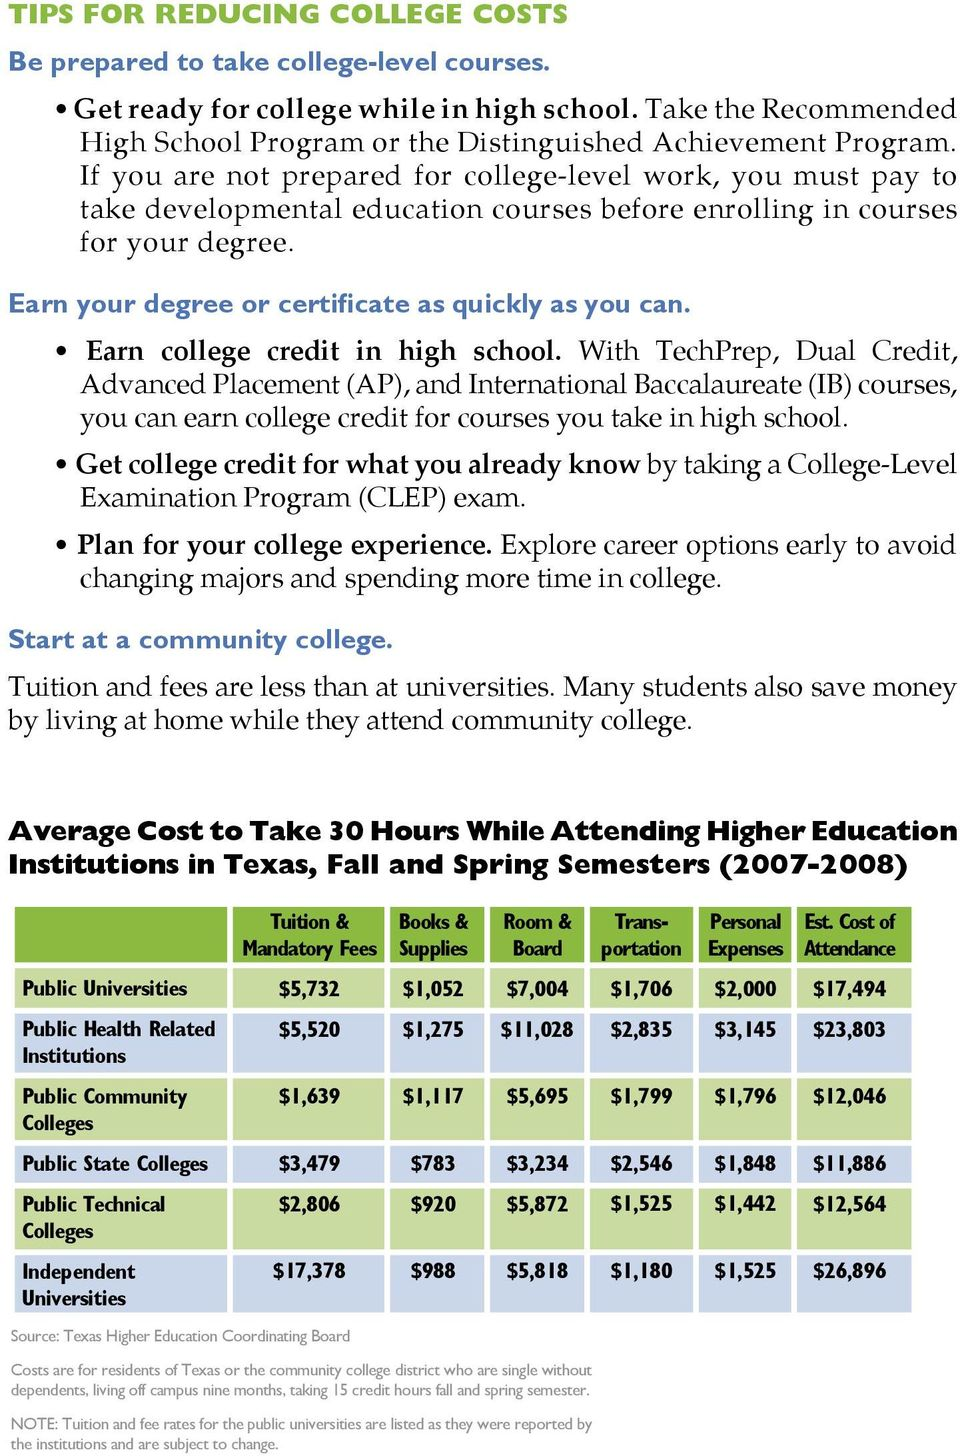 If you are not prepared for college-level work, you must pay to take developmental education courses before enrolling in courses for your degree. Earn your degree or certificate as quickly as you can.